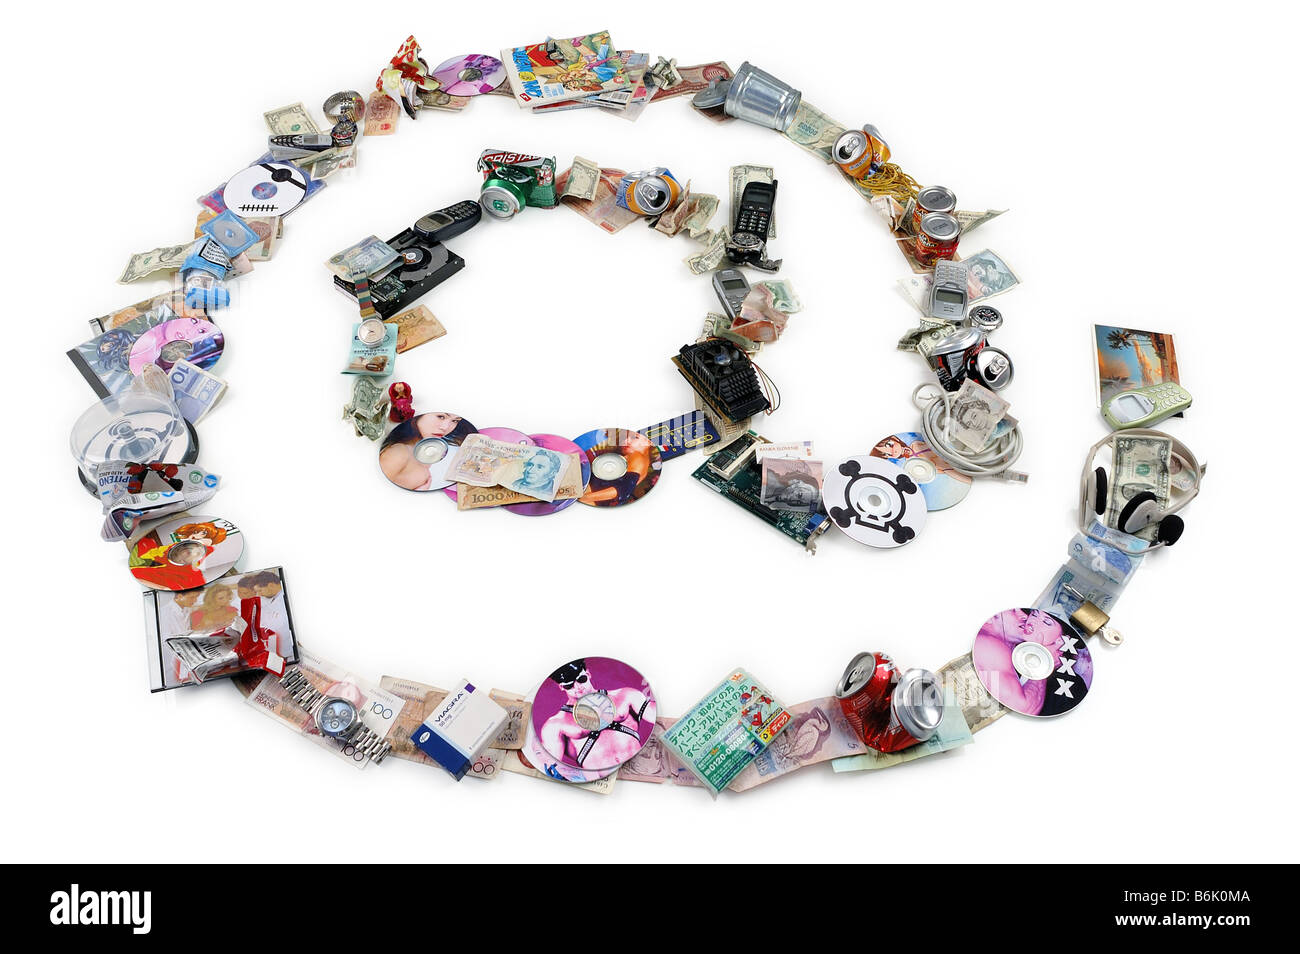 The @ (at) simbol composed with garbage. A symbolic representation of spam and junk mail - Stock Image